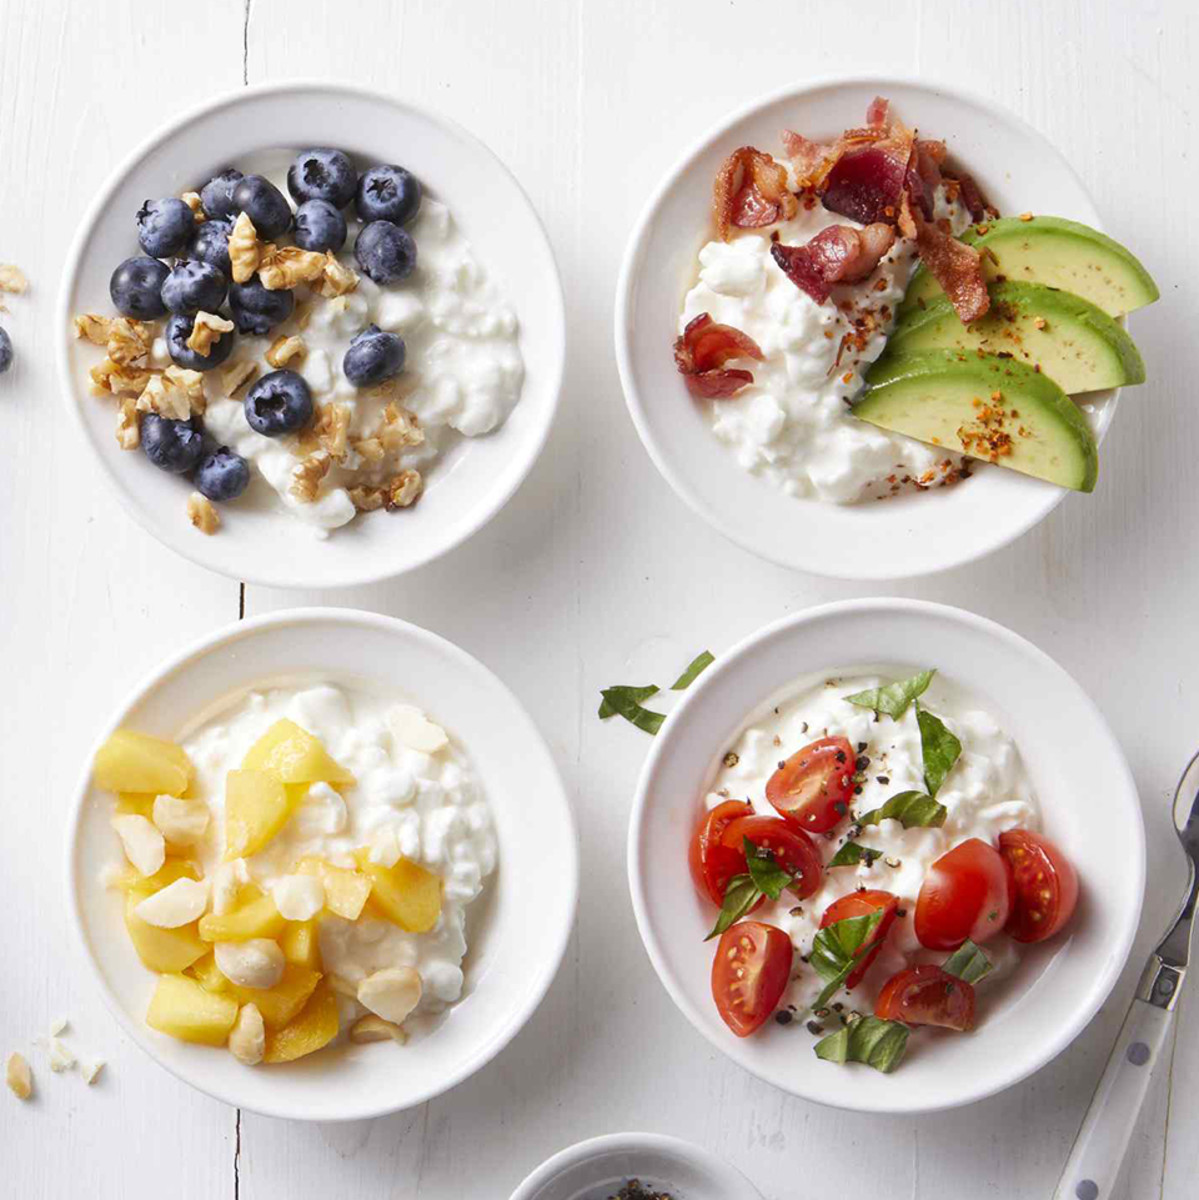 Cottage cheese is a calcium-rich food.